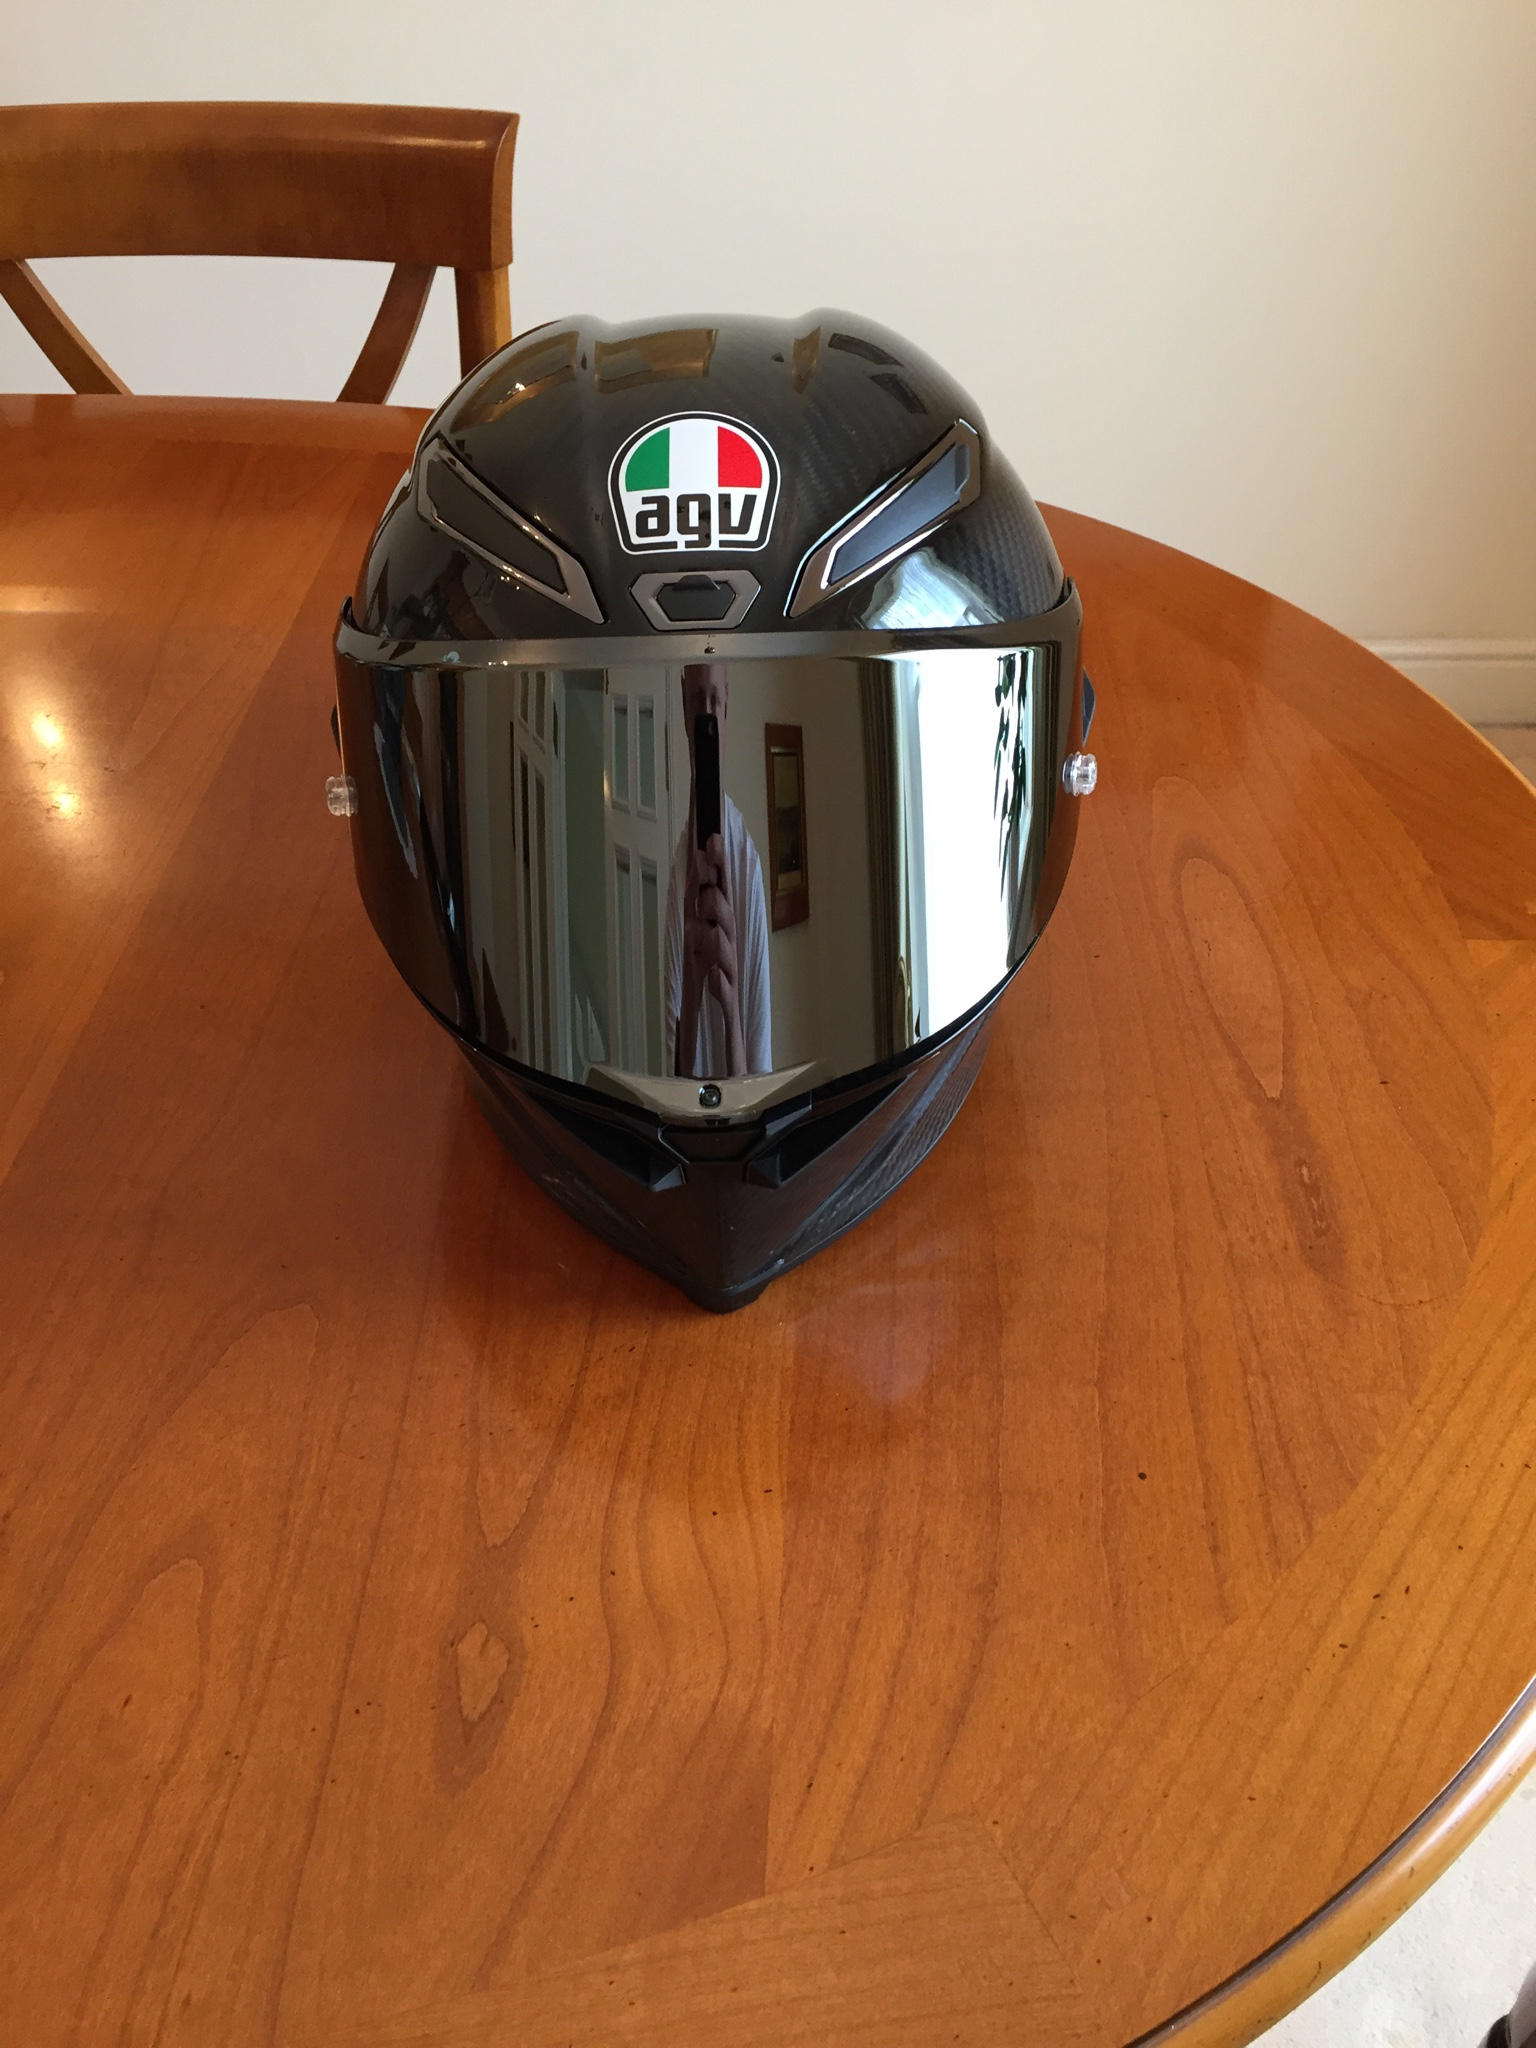 agv pista gp r review from a former pista gp owner. Black Bedroom Furniture Sets. Home Design Ideas